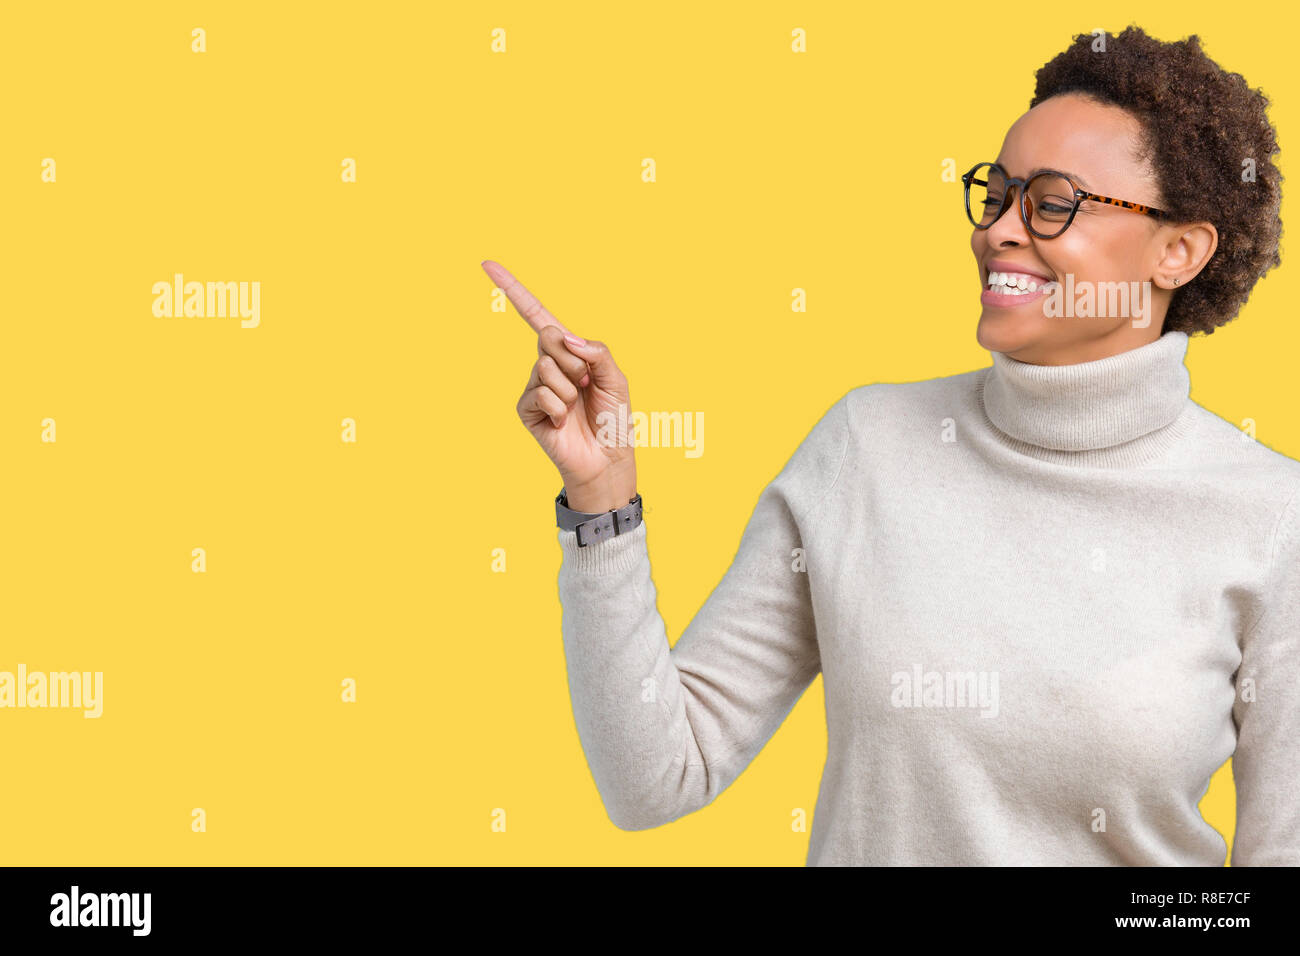 9c38a4d02d34 Young beautiful african american woman wearing glasses over isolated  background with a big smile on face